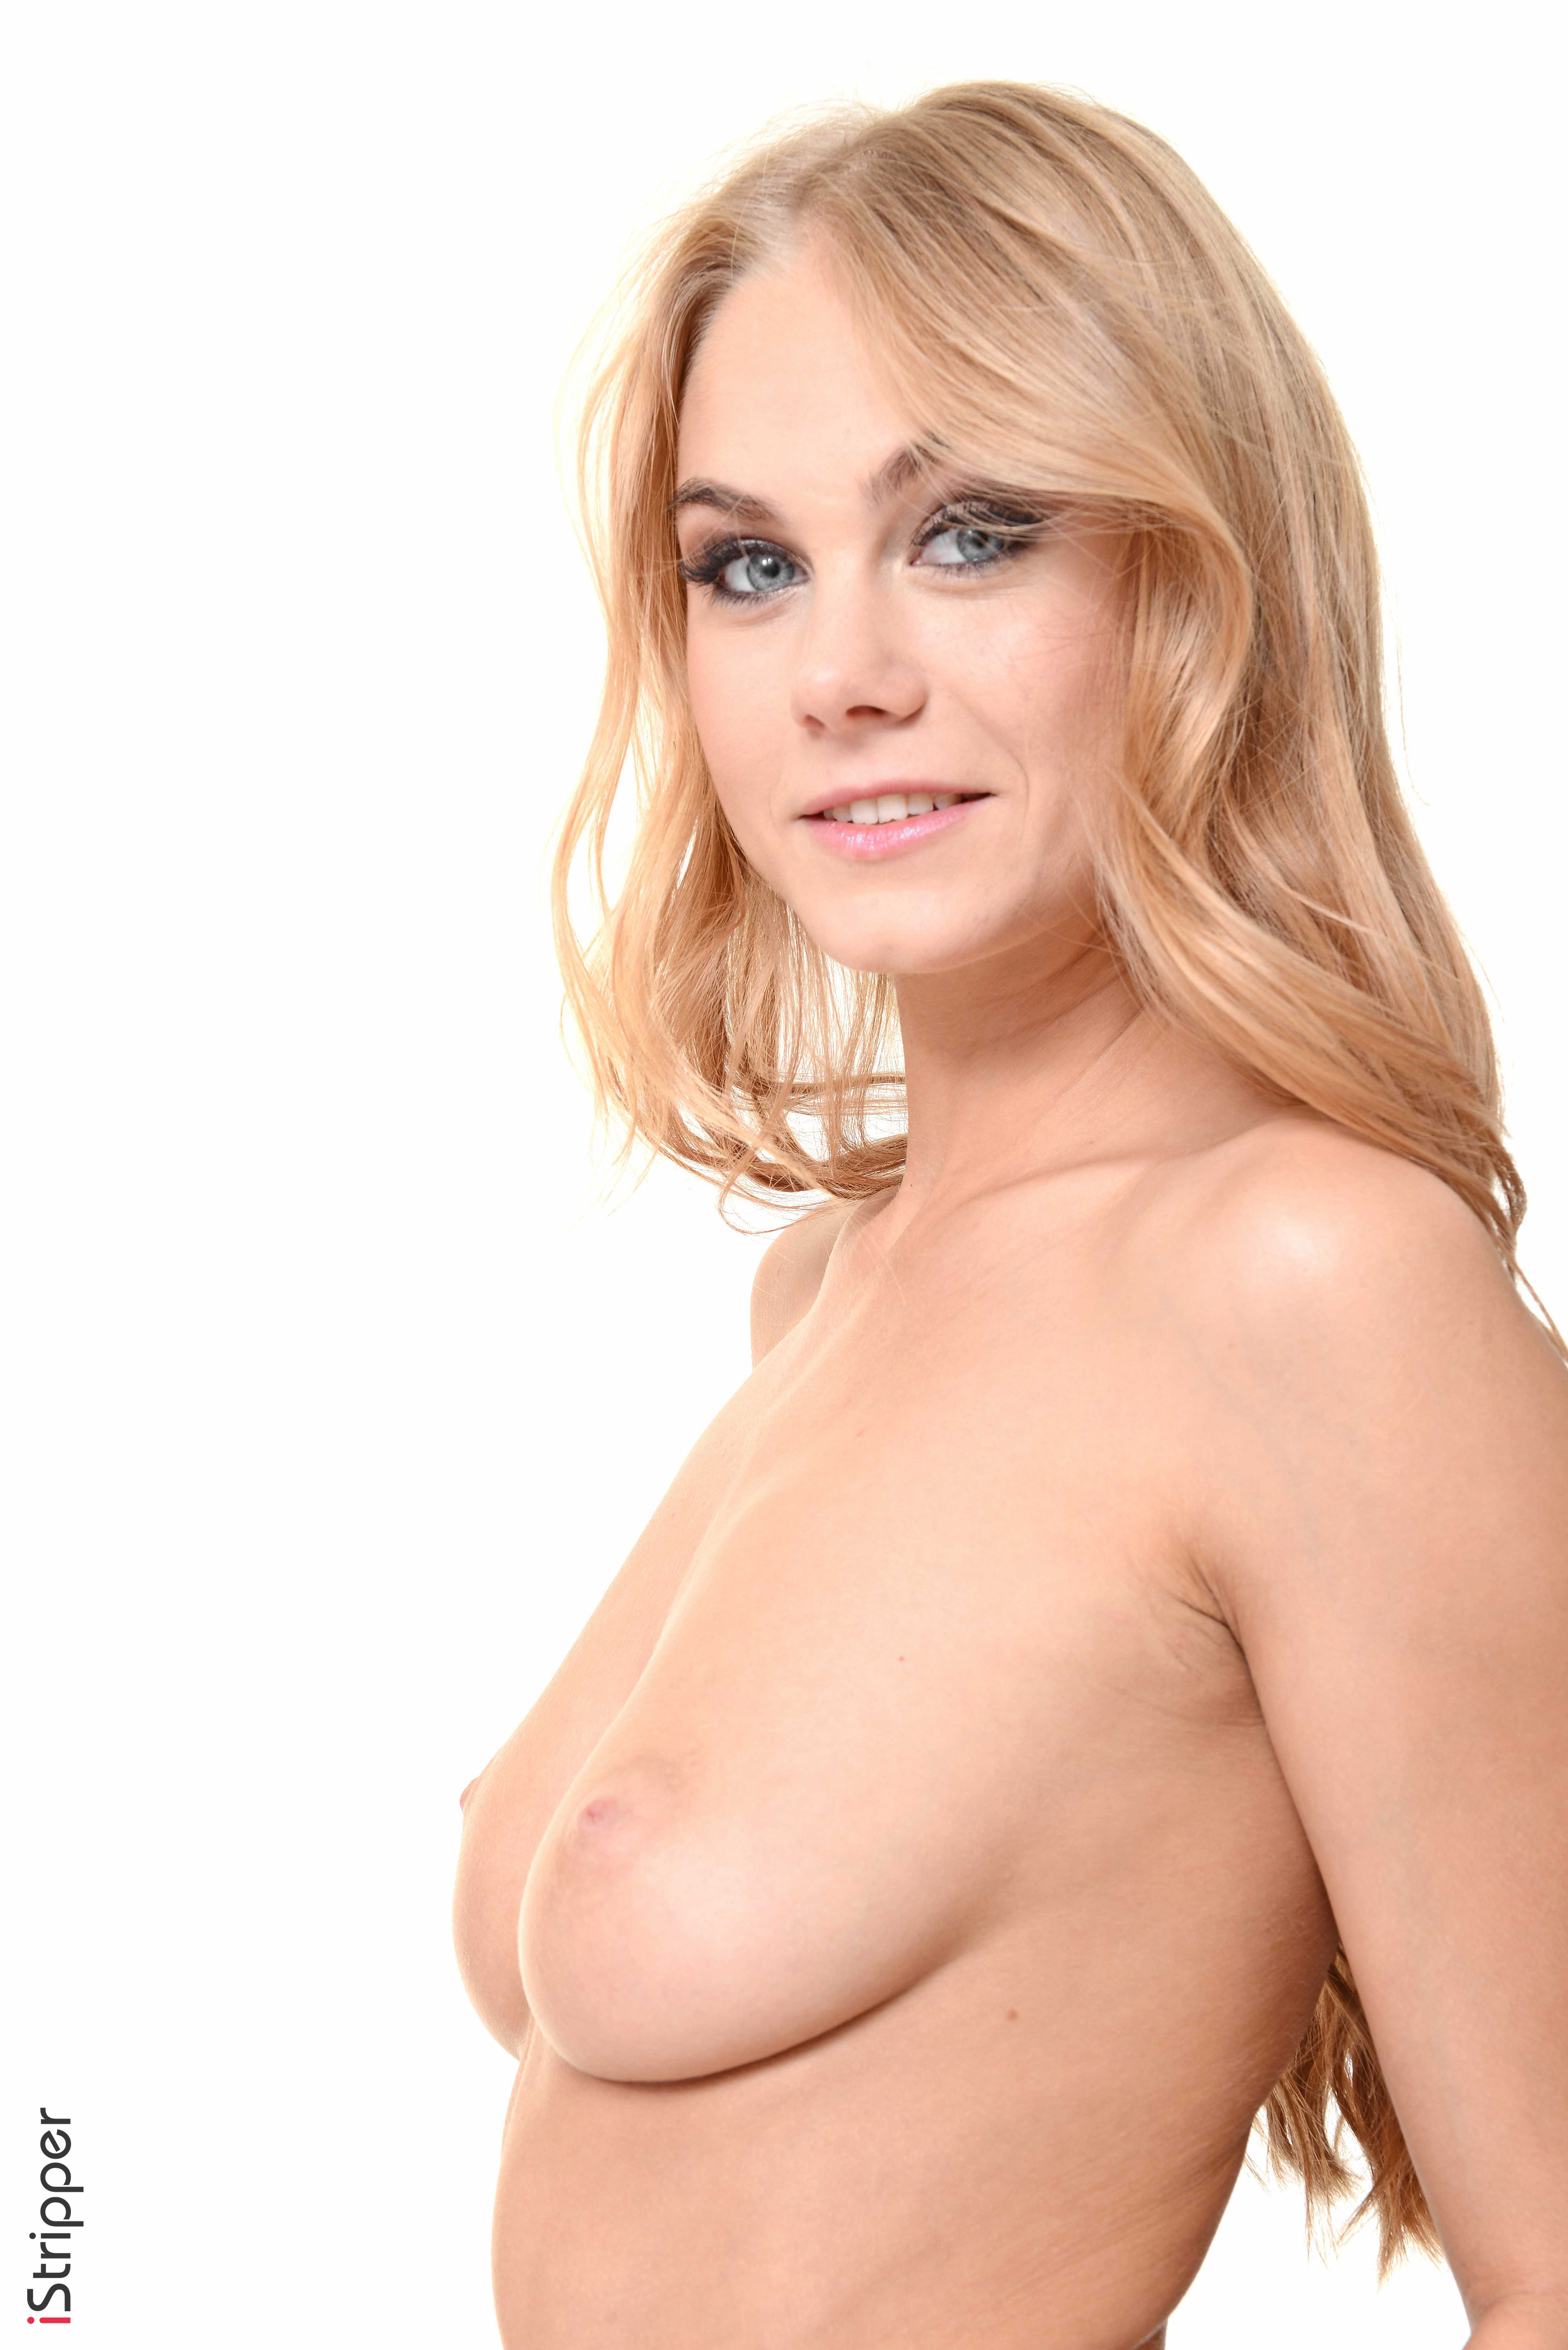 hot naked girls wallpapers